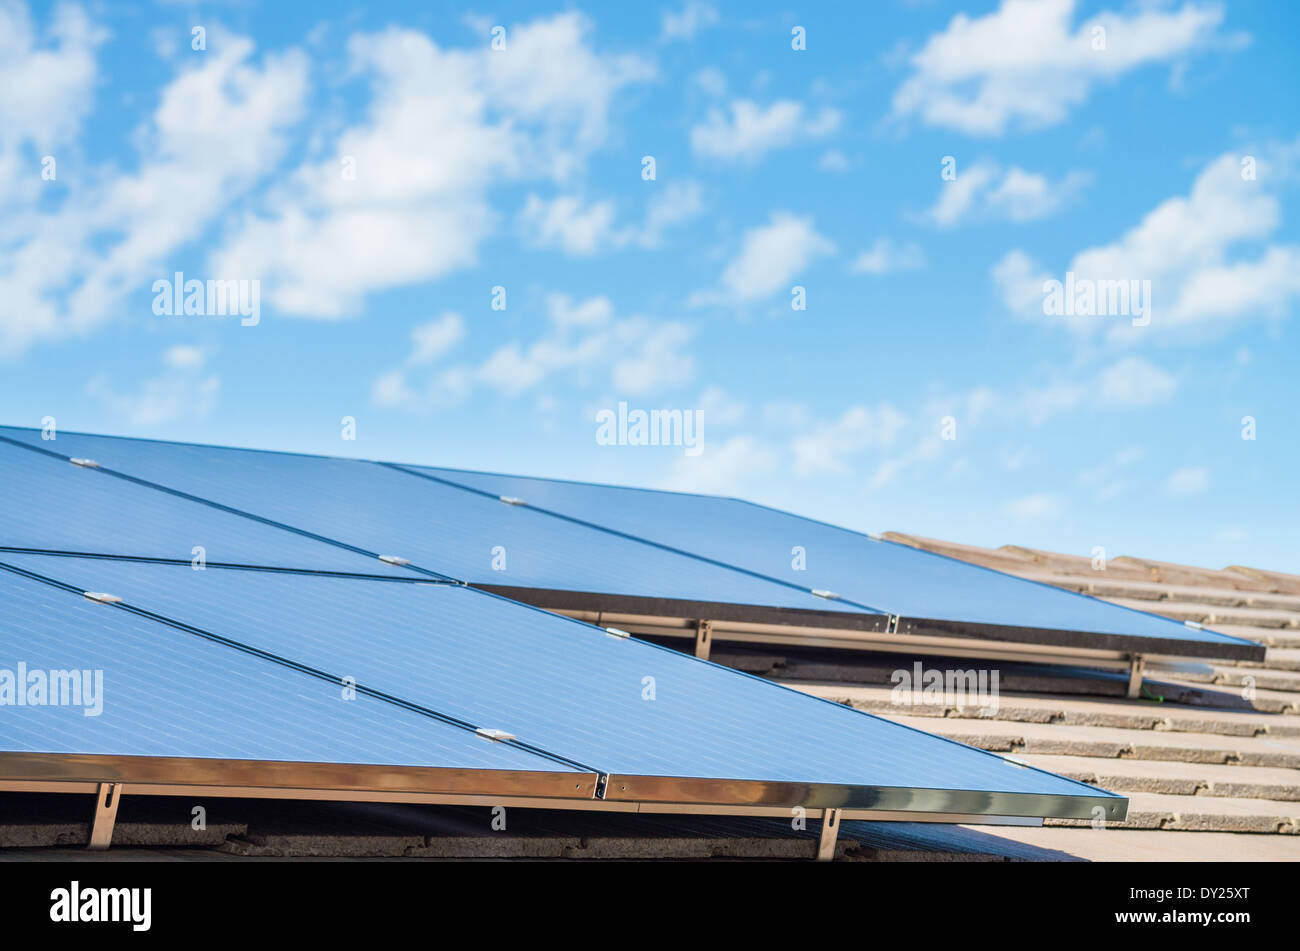 new solar panels on the roof of modern suburban house - Stock Image